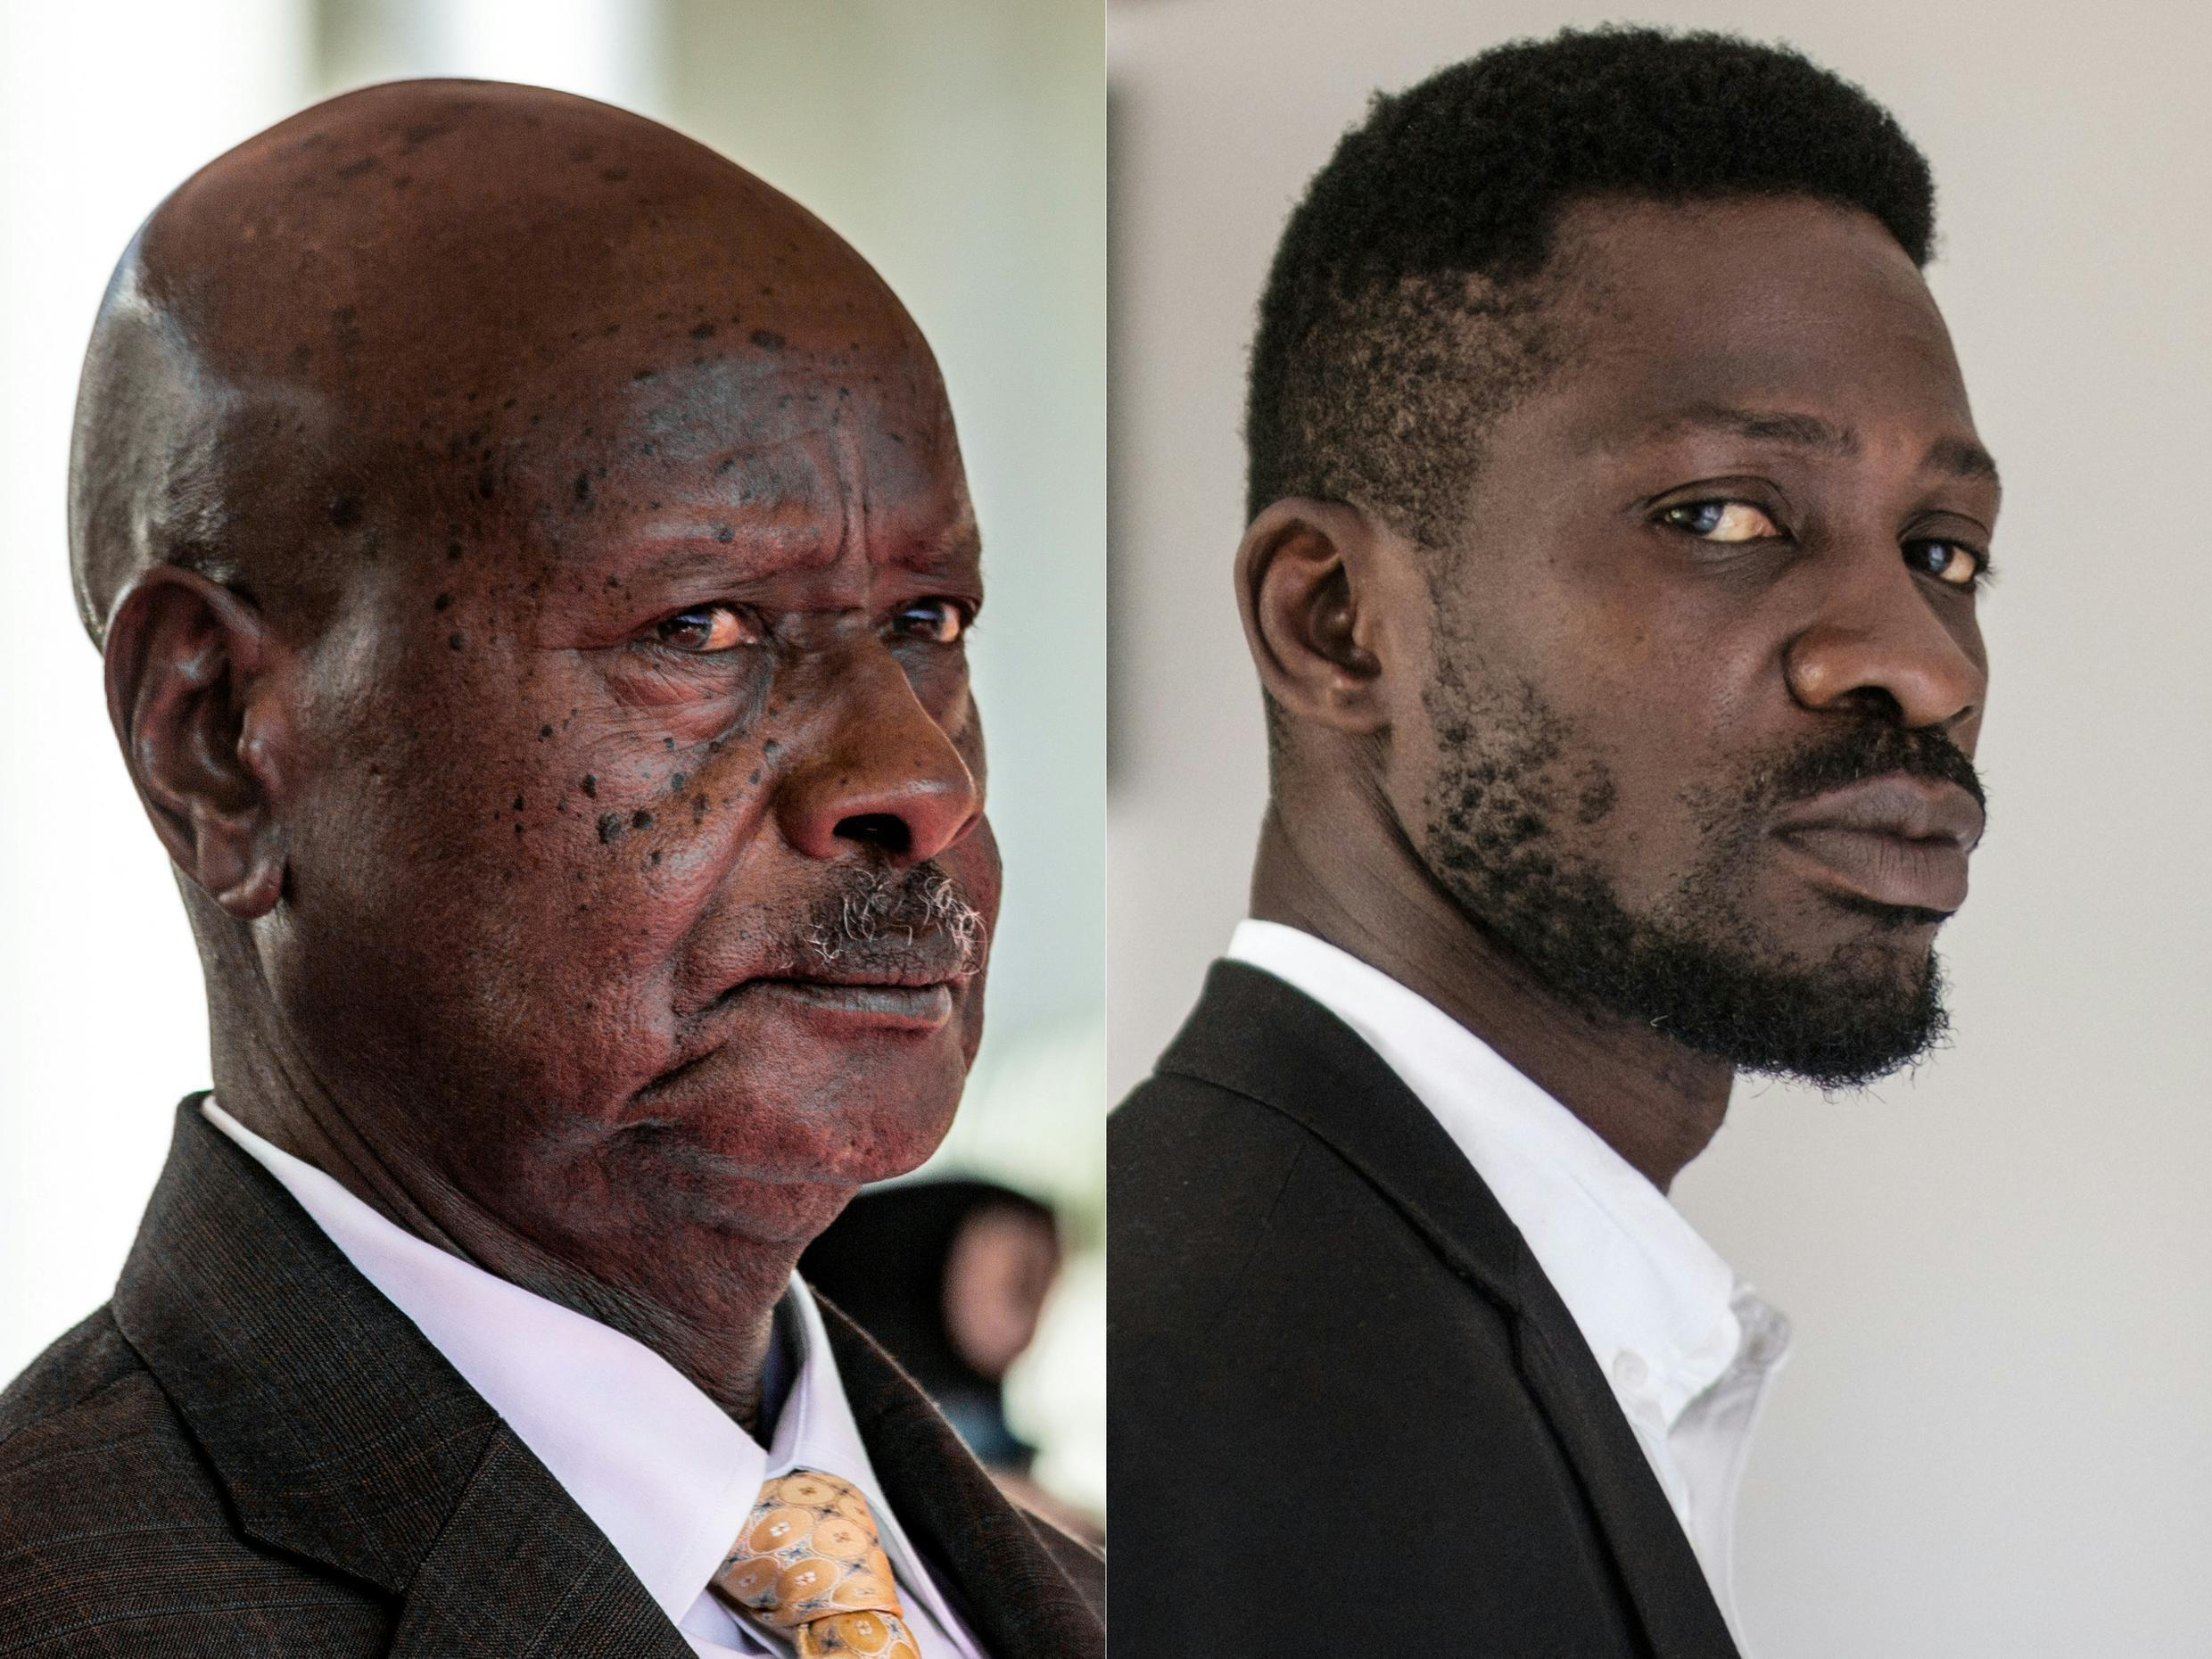 President Yoweri Museveni and singer-turned-politician Bobi Wine (real name Robert Kyagulanyi) are the main contenders in the Ugandan presidential election on January 14, 2021.